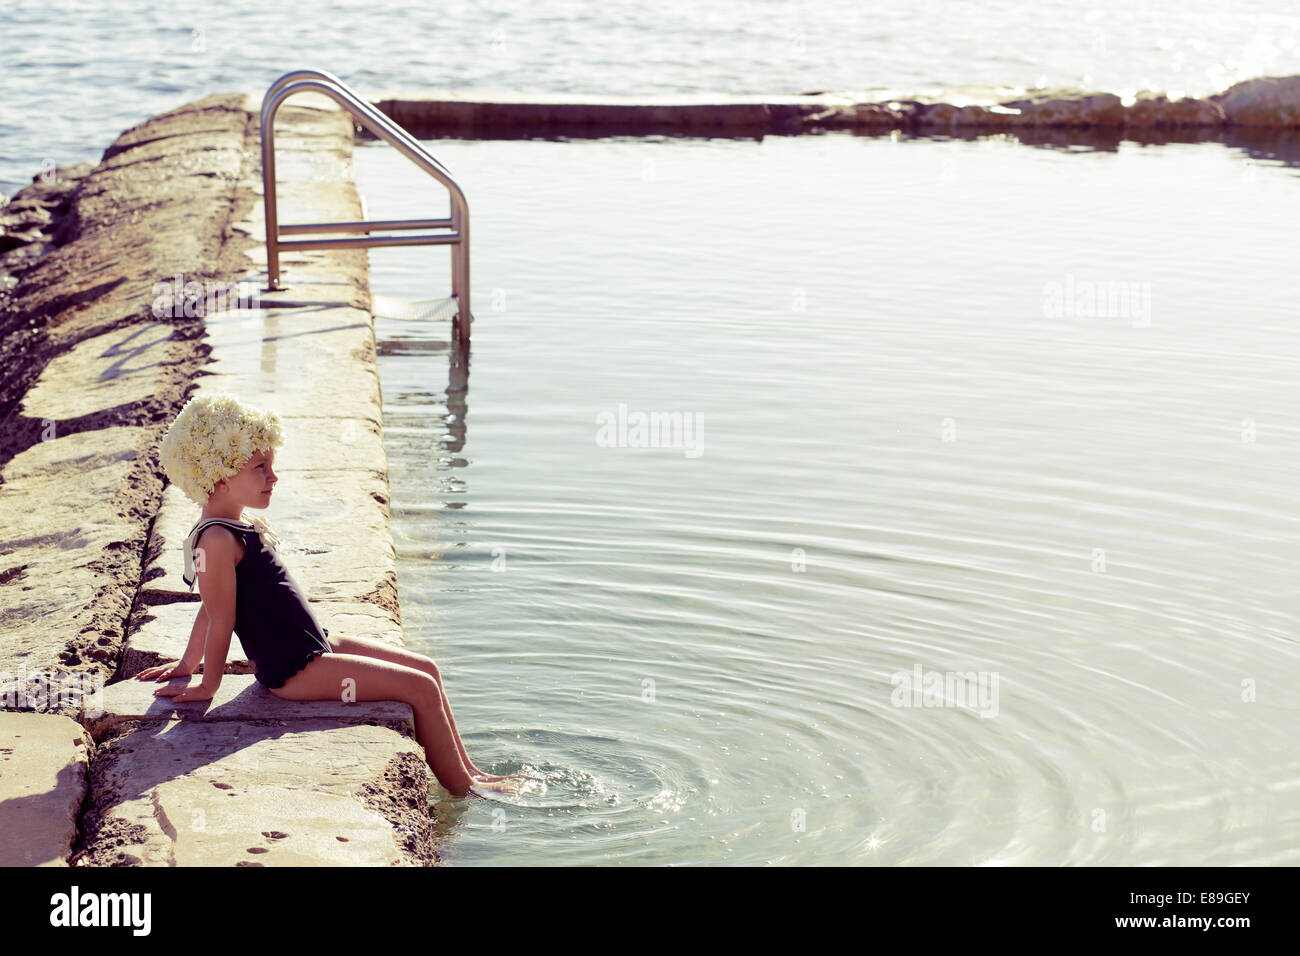 Girl in Flower cap sitting along pool - Stock Image